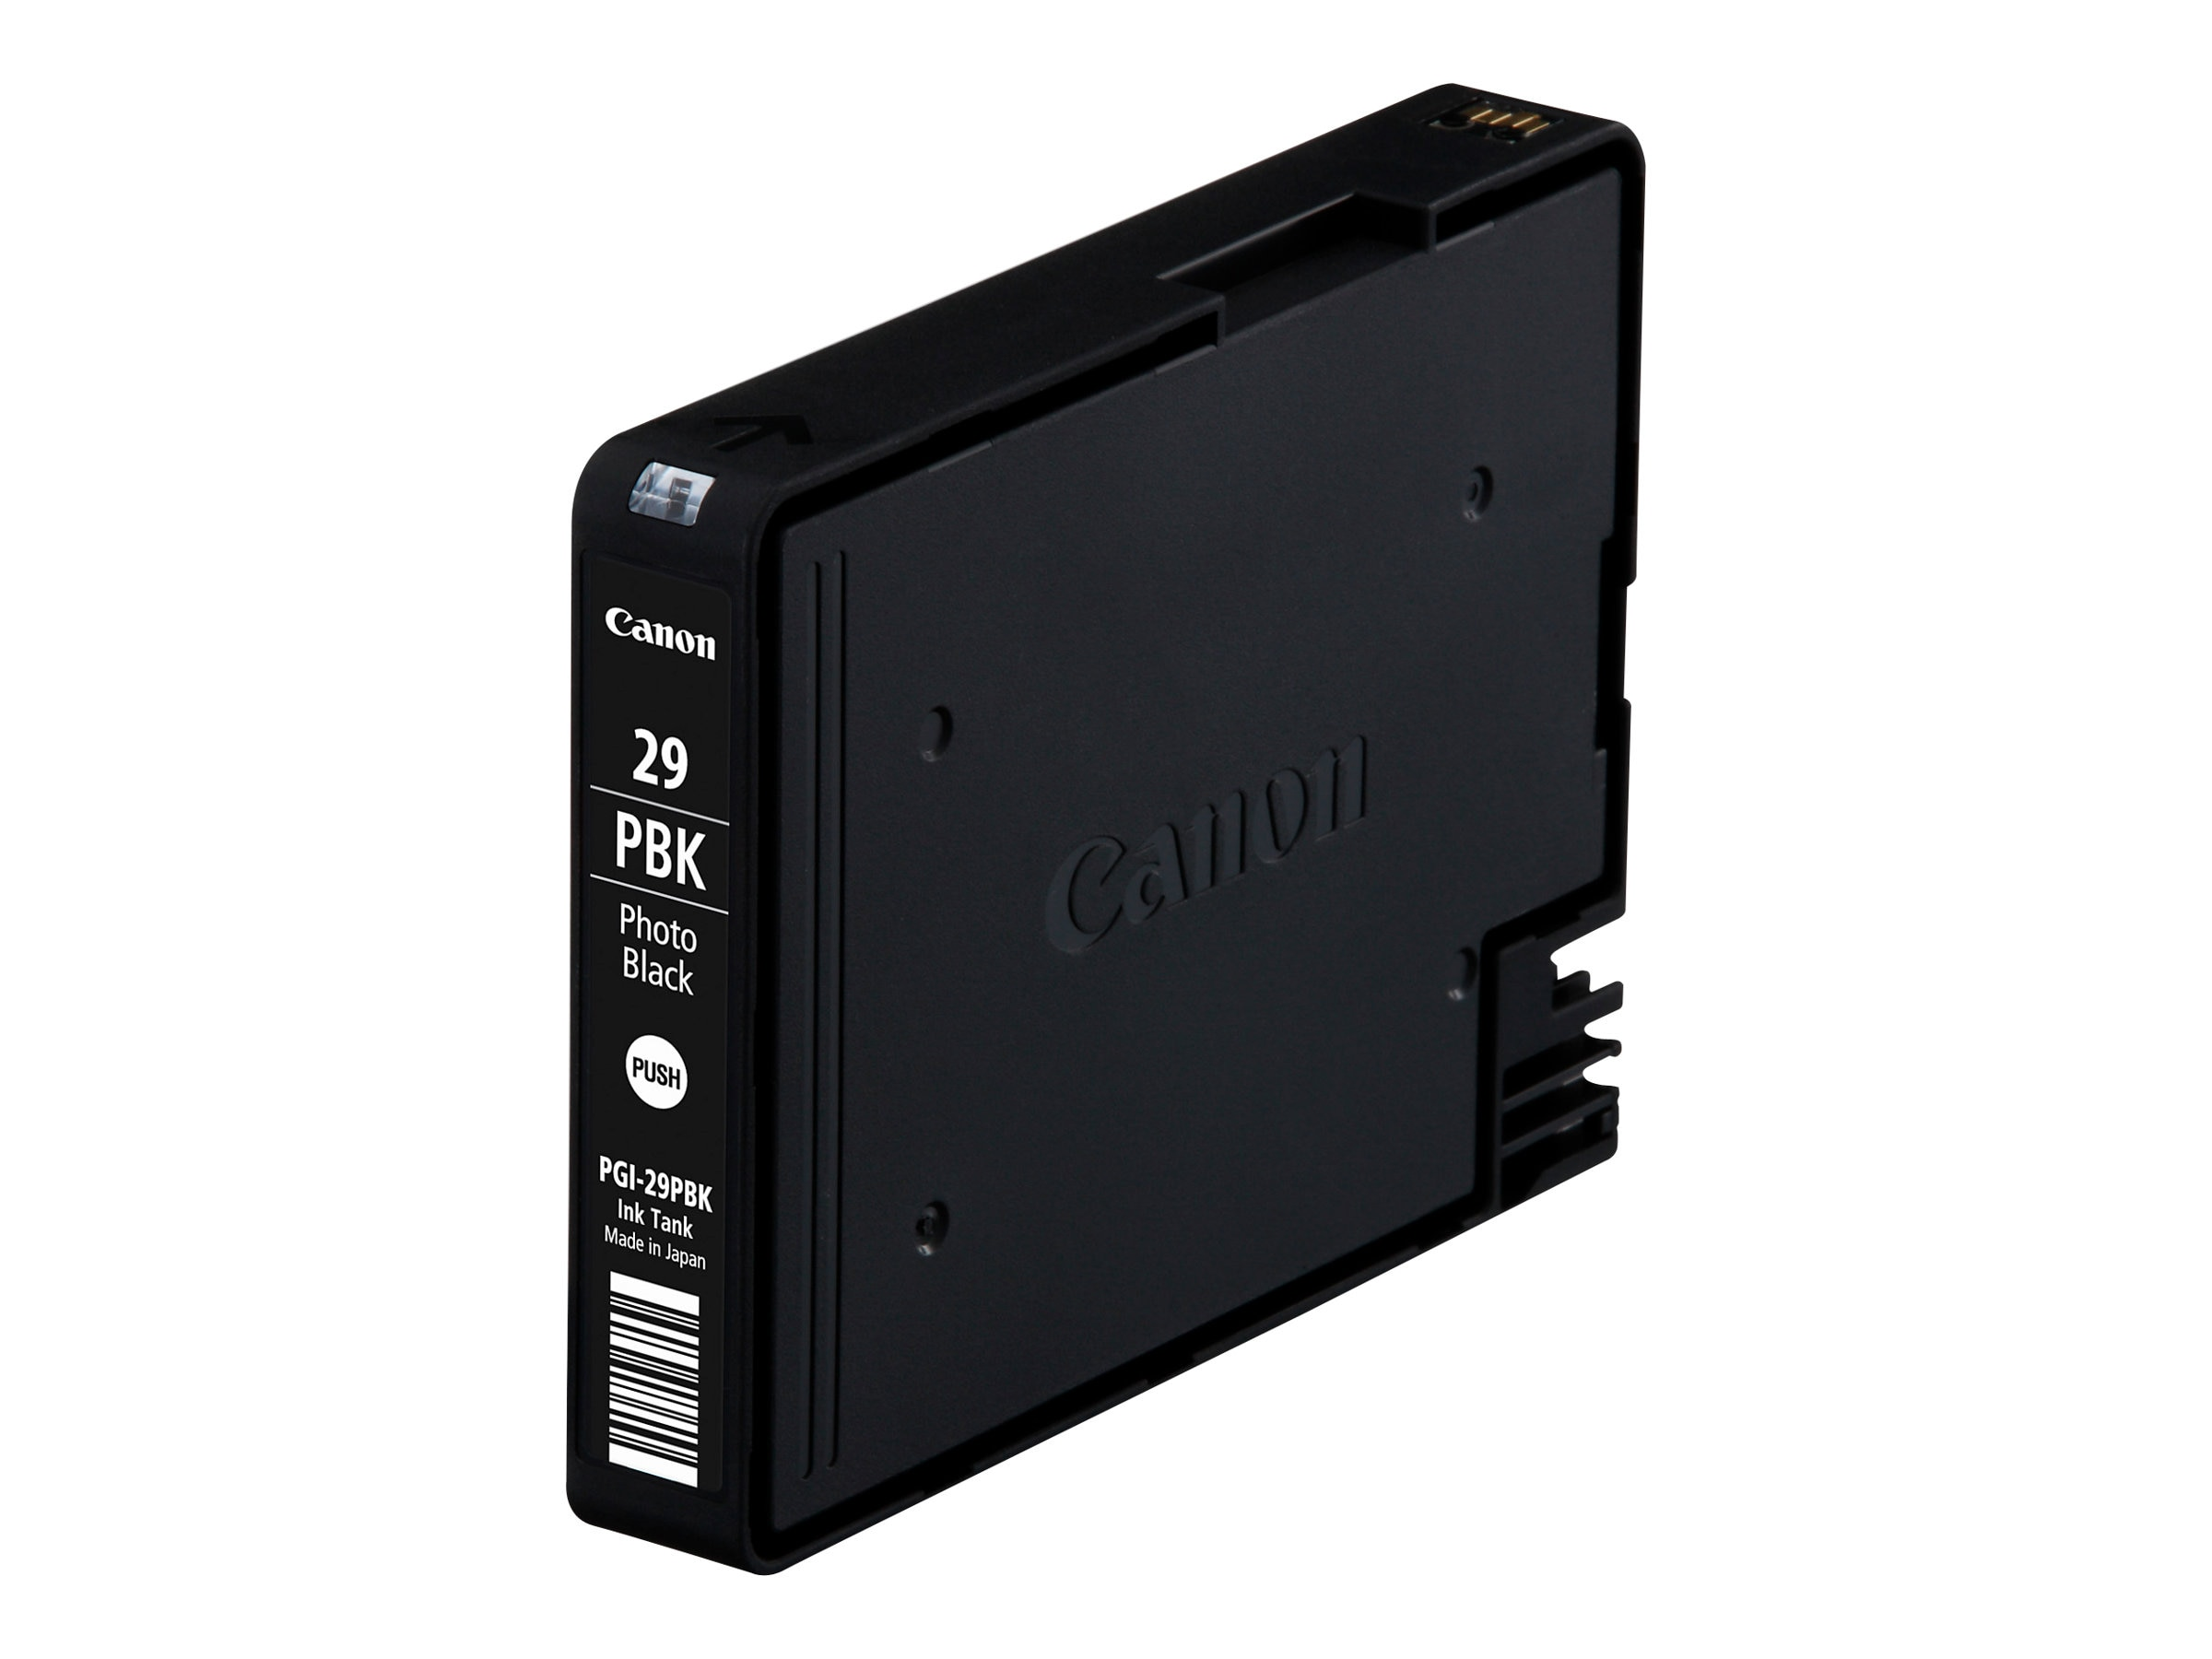 Canon Photo Black PGI-29PBK Ink Tank, 4869B002